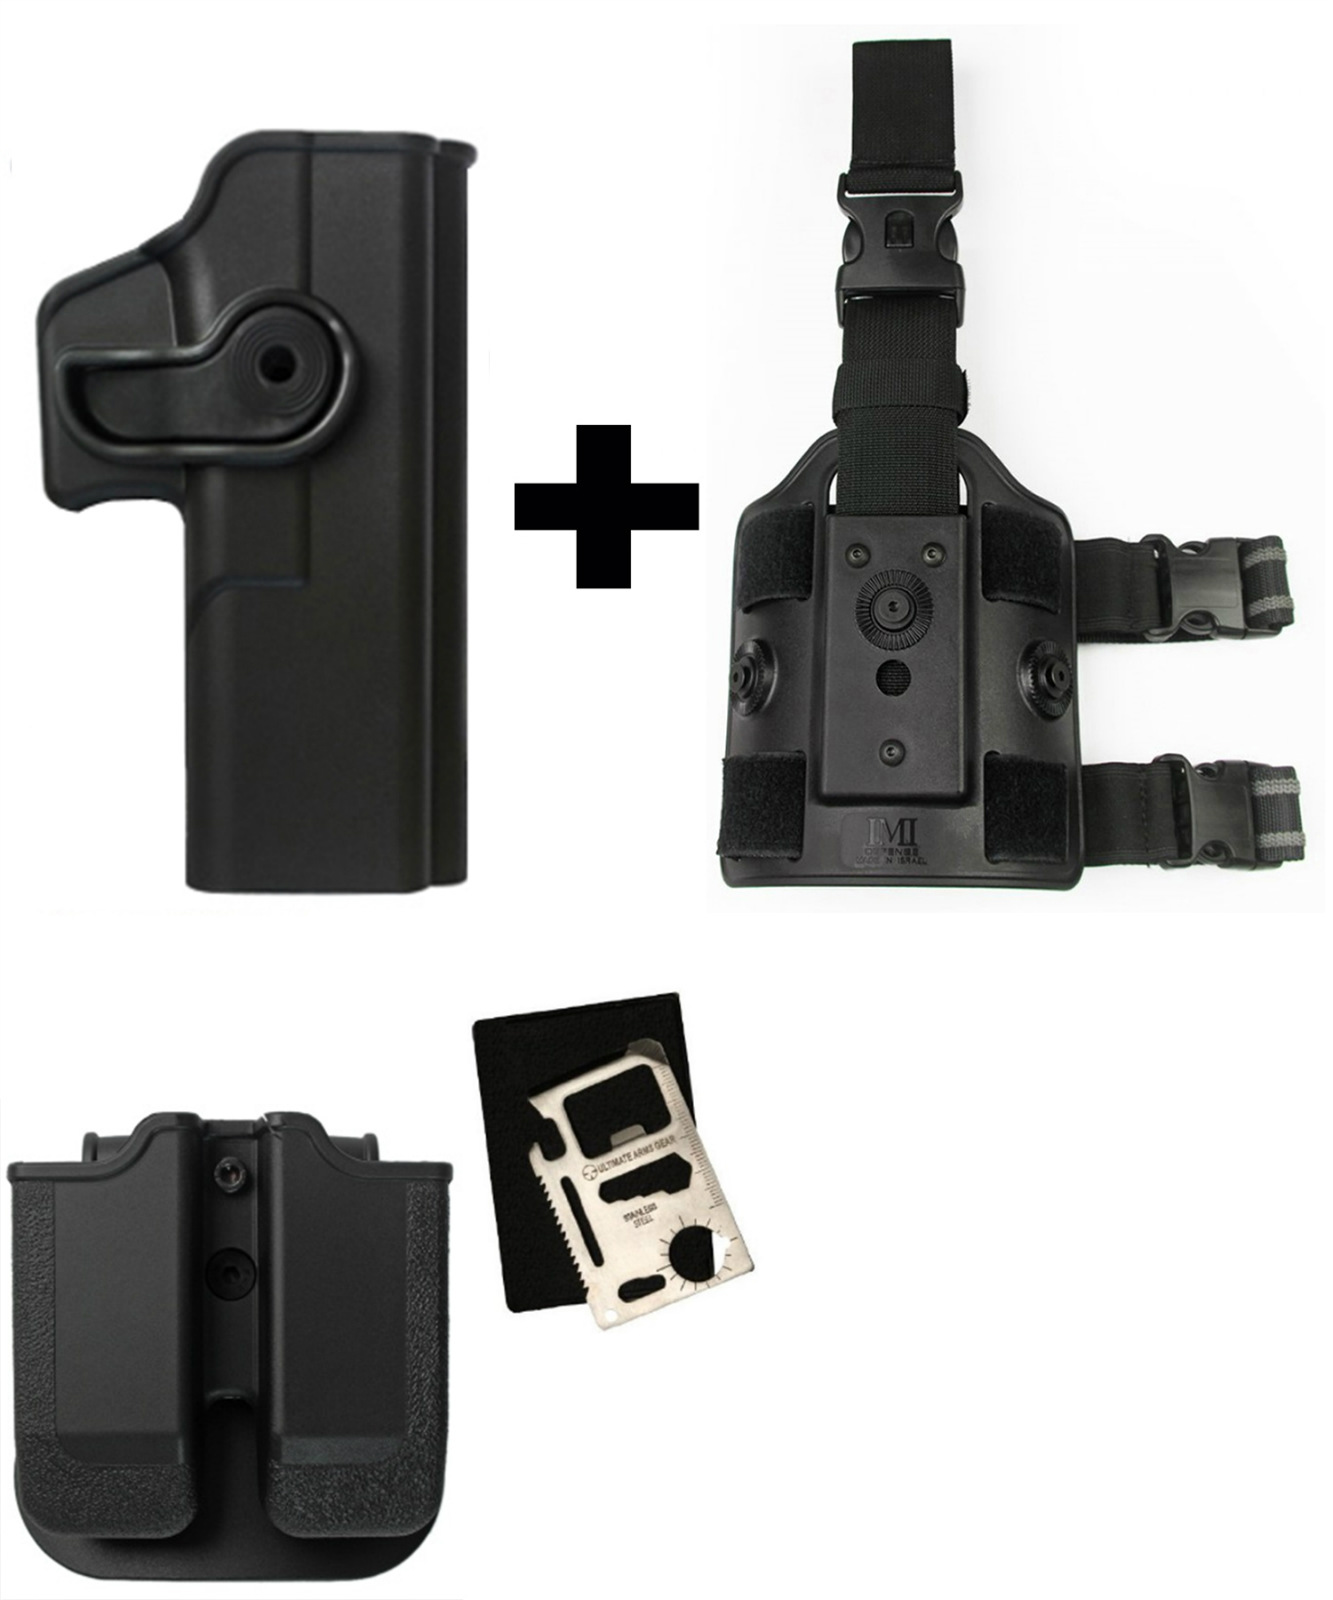 IMI Defense Z2020 MP02 Double Mag Holder & Paddle + Z1050 Rotate Holster Glock 20 21 28 30 37 38 Right Hand Gen 4... by